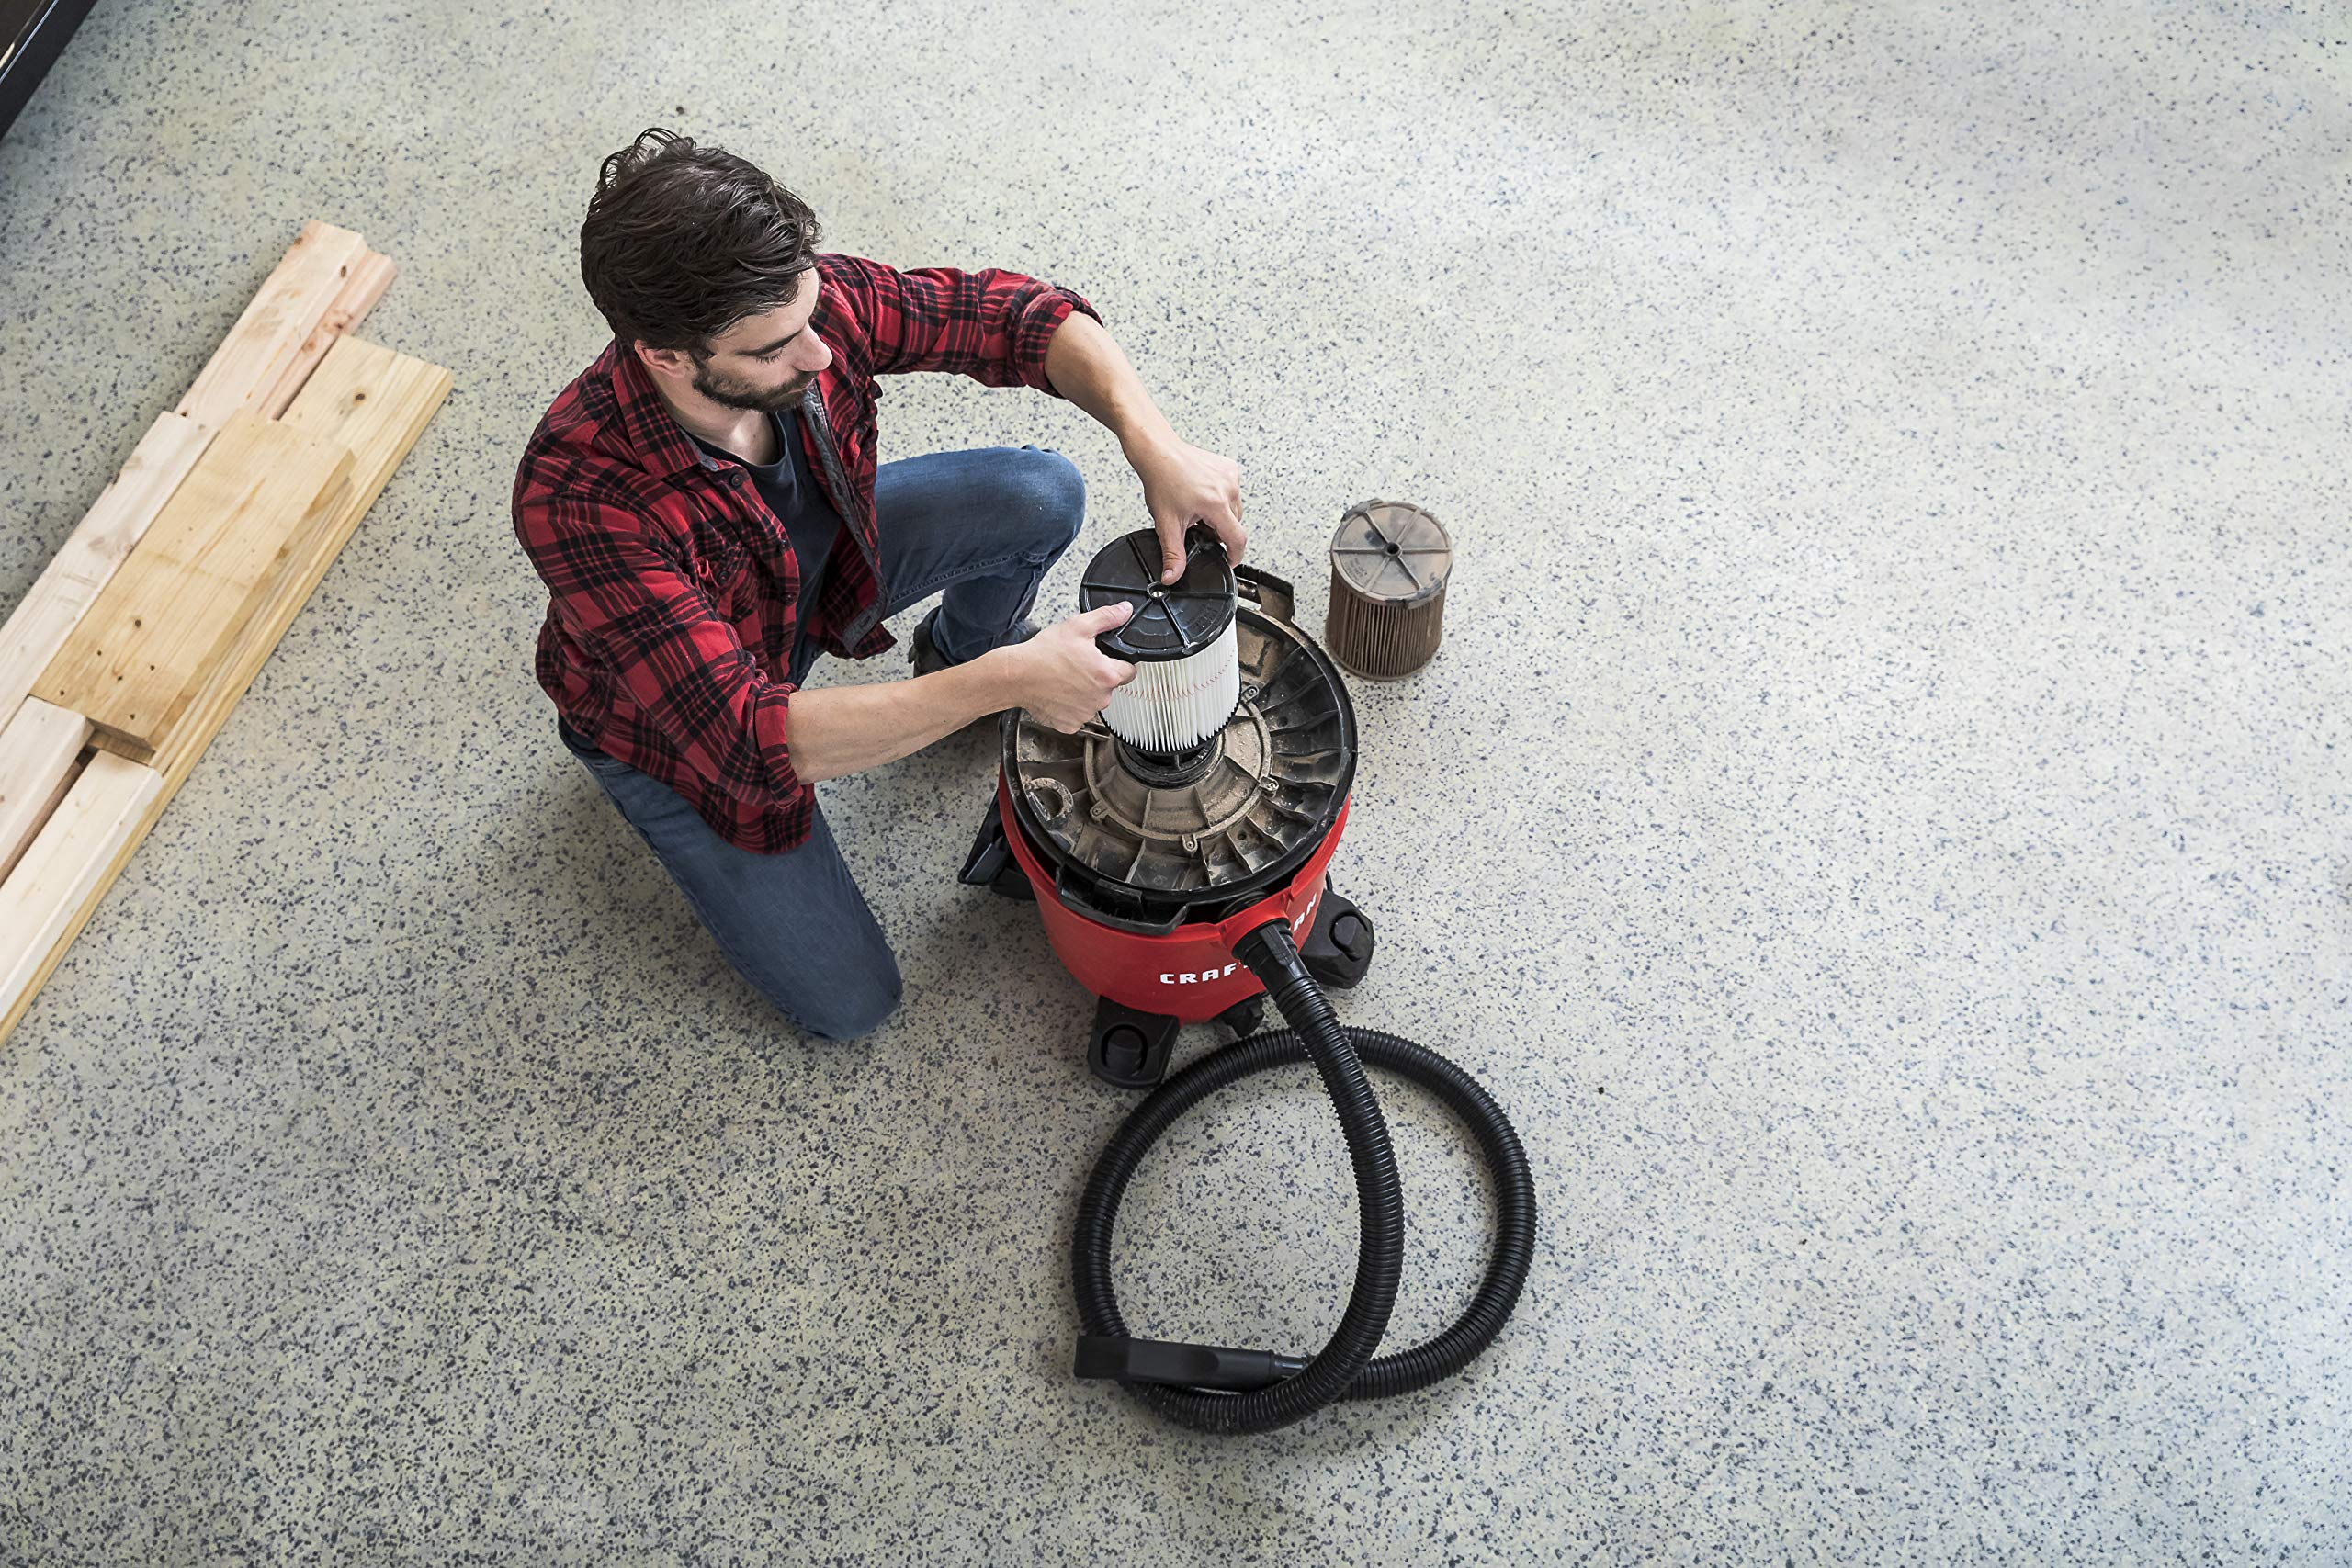 CRAFTSMAN CMXEVBE17590 9 gallon 4.25 Peak Hp Wet/Dry Vac, Portable Shop Vacuum with Attachments by Craftsman (Image #6)